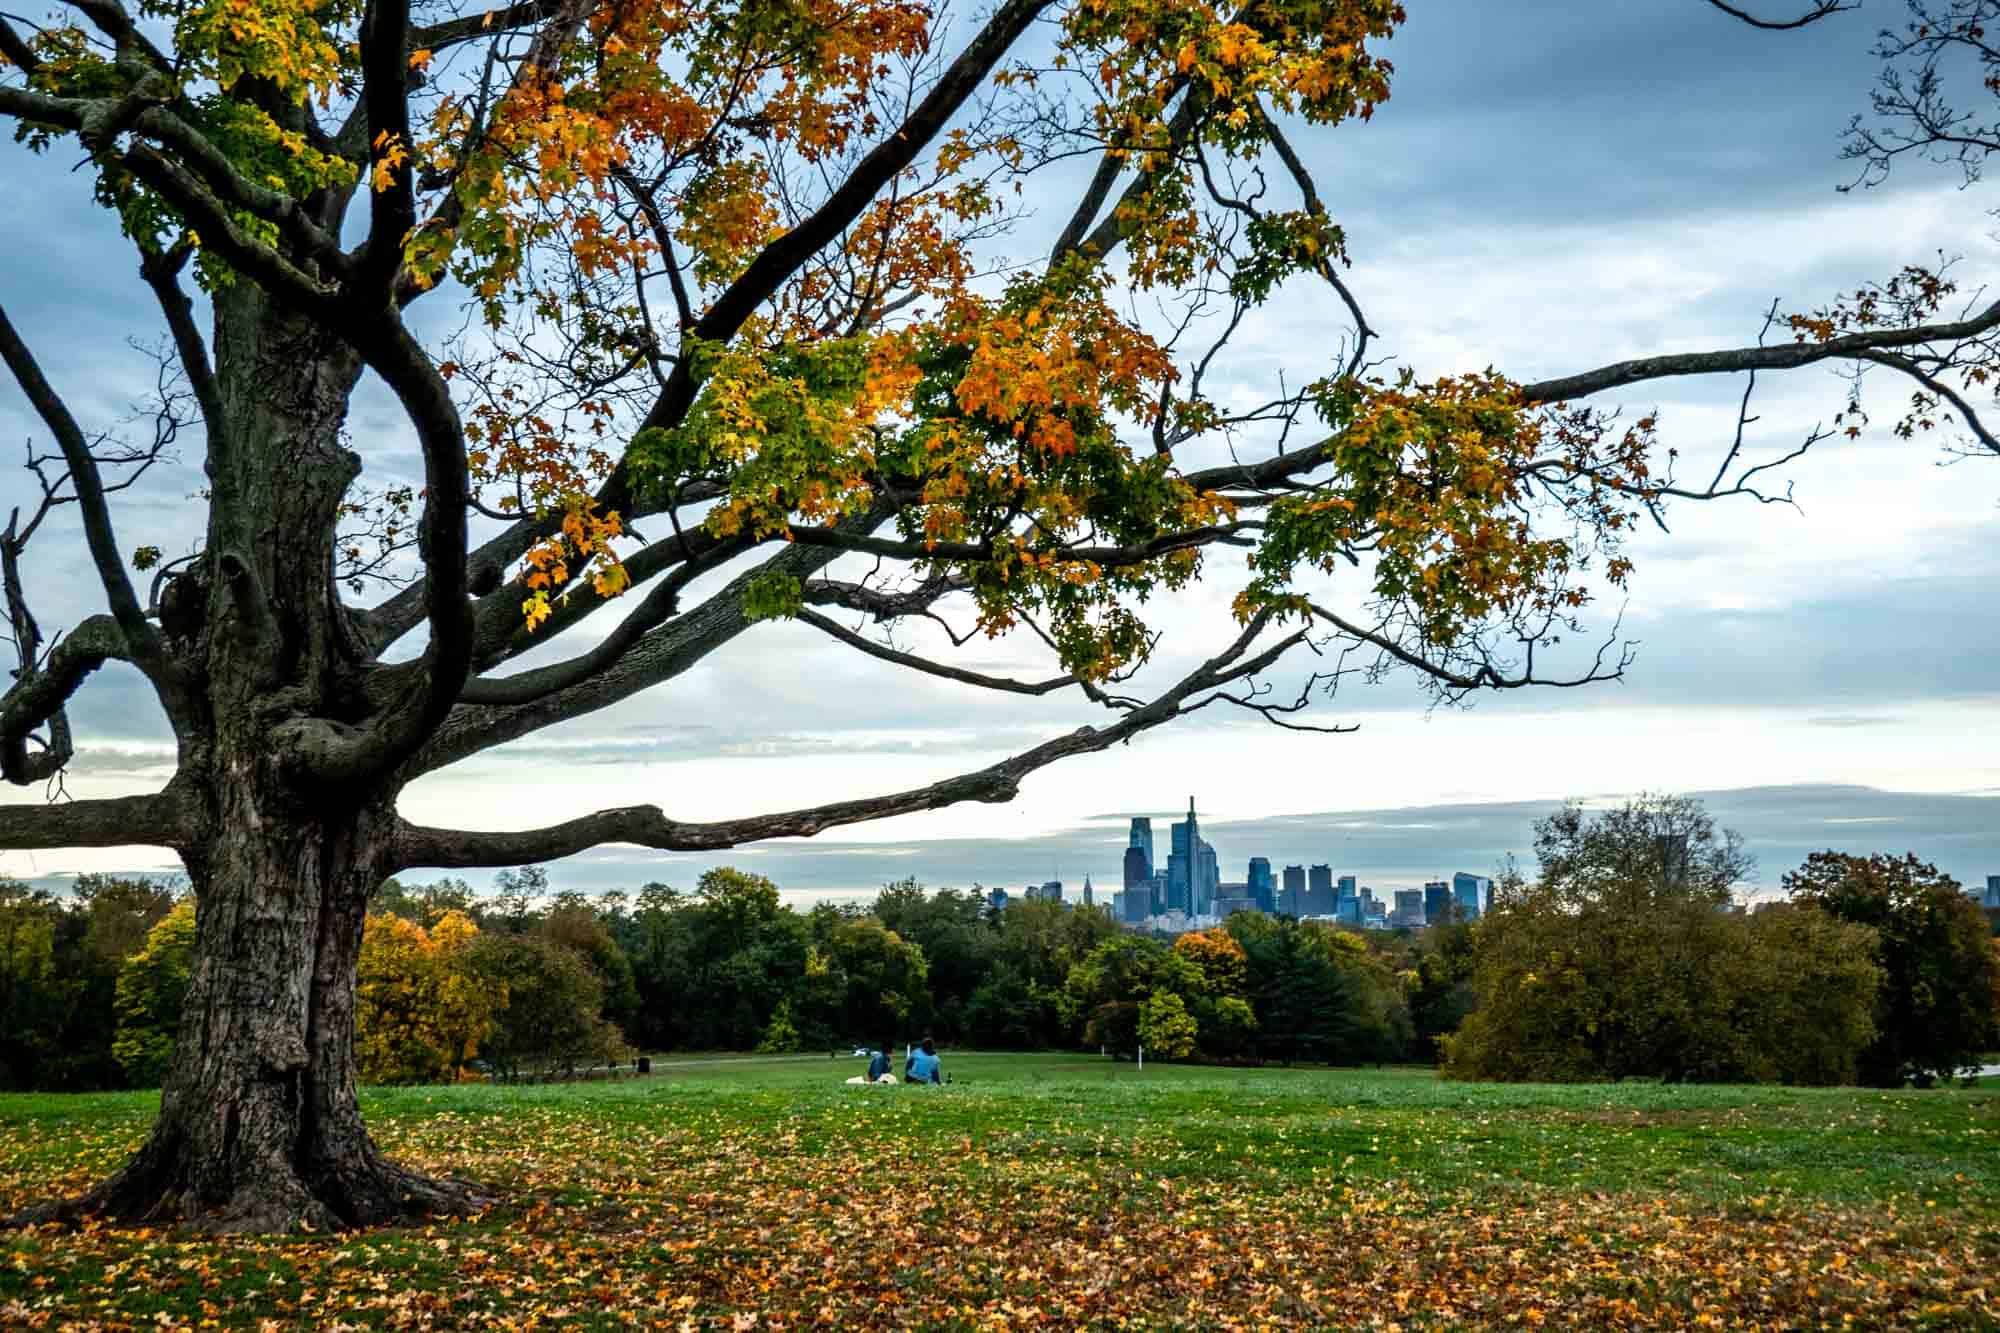 Tree with fall foliage in the foreground frames a city skyline in the distance